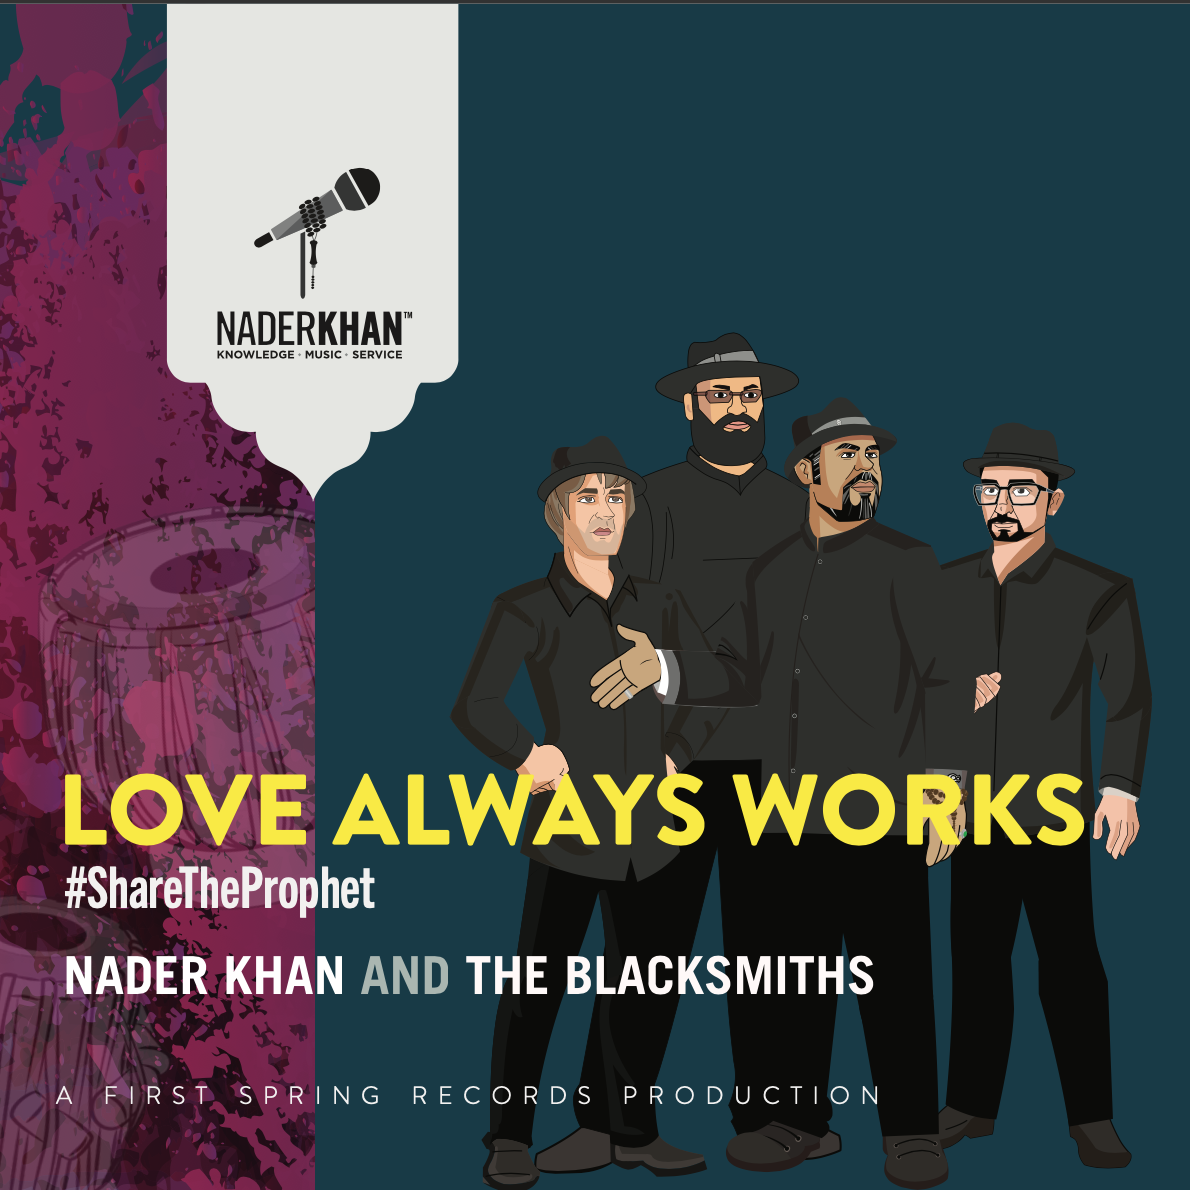 Love Always Works - Buy the CD